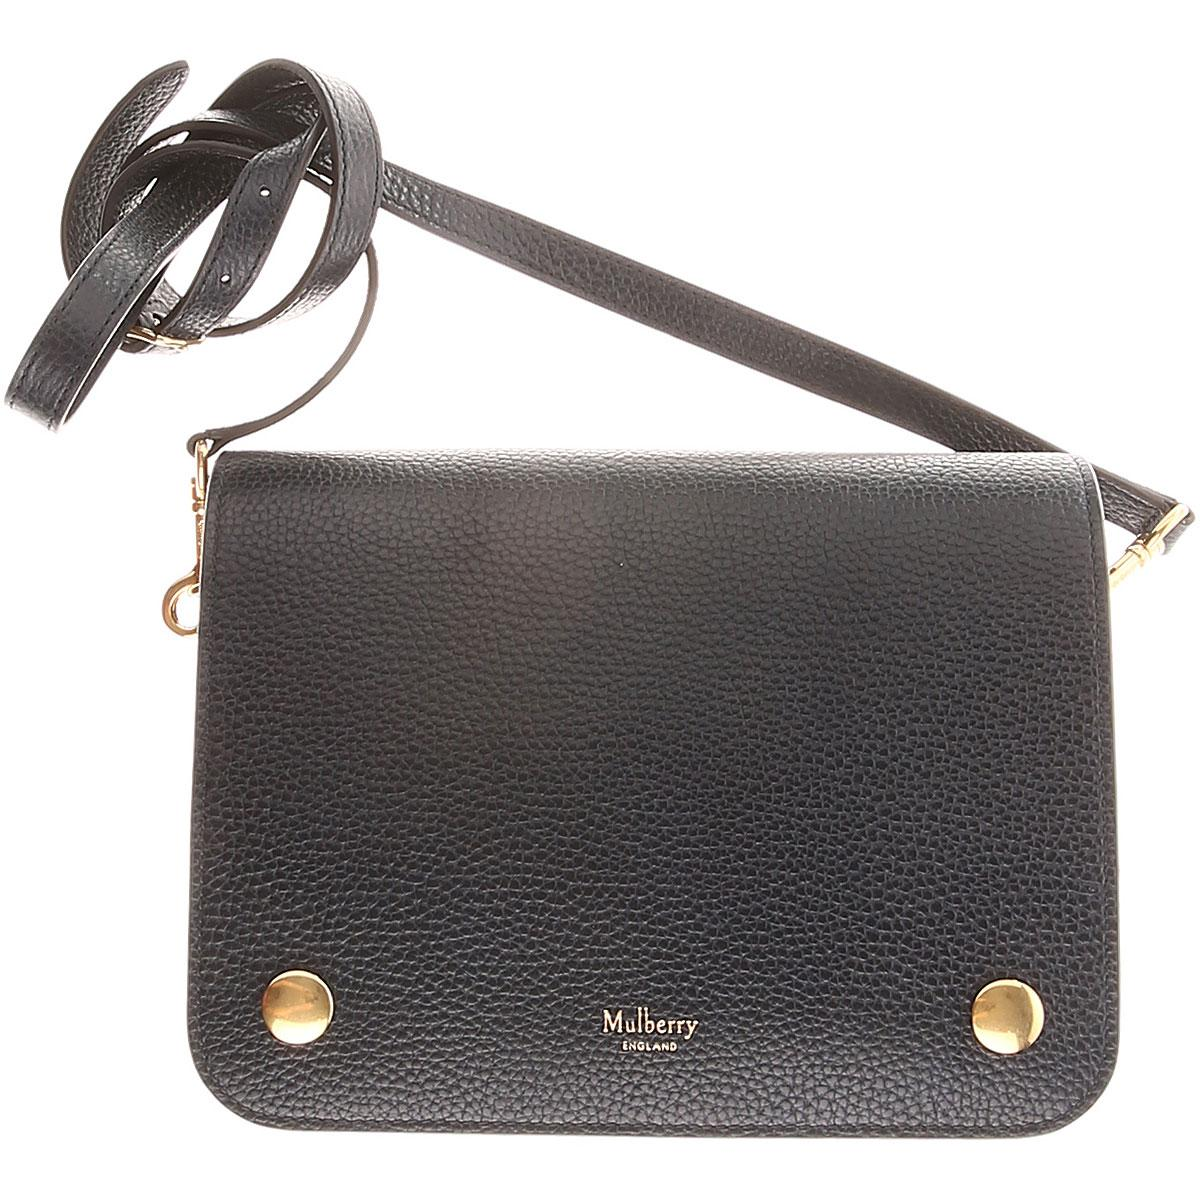 Lyst - Mulberry Shoulder Bag For Women On Sale in Blue 92839cb8f9ff3